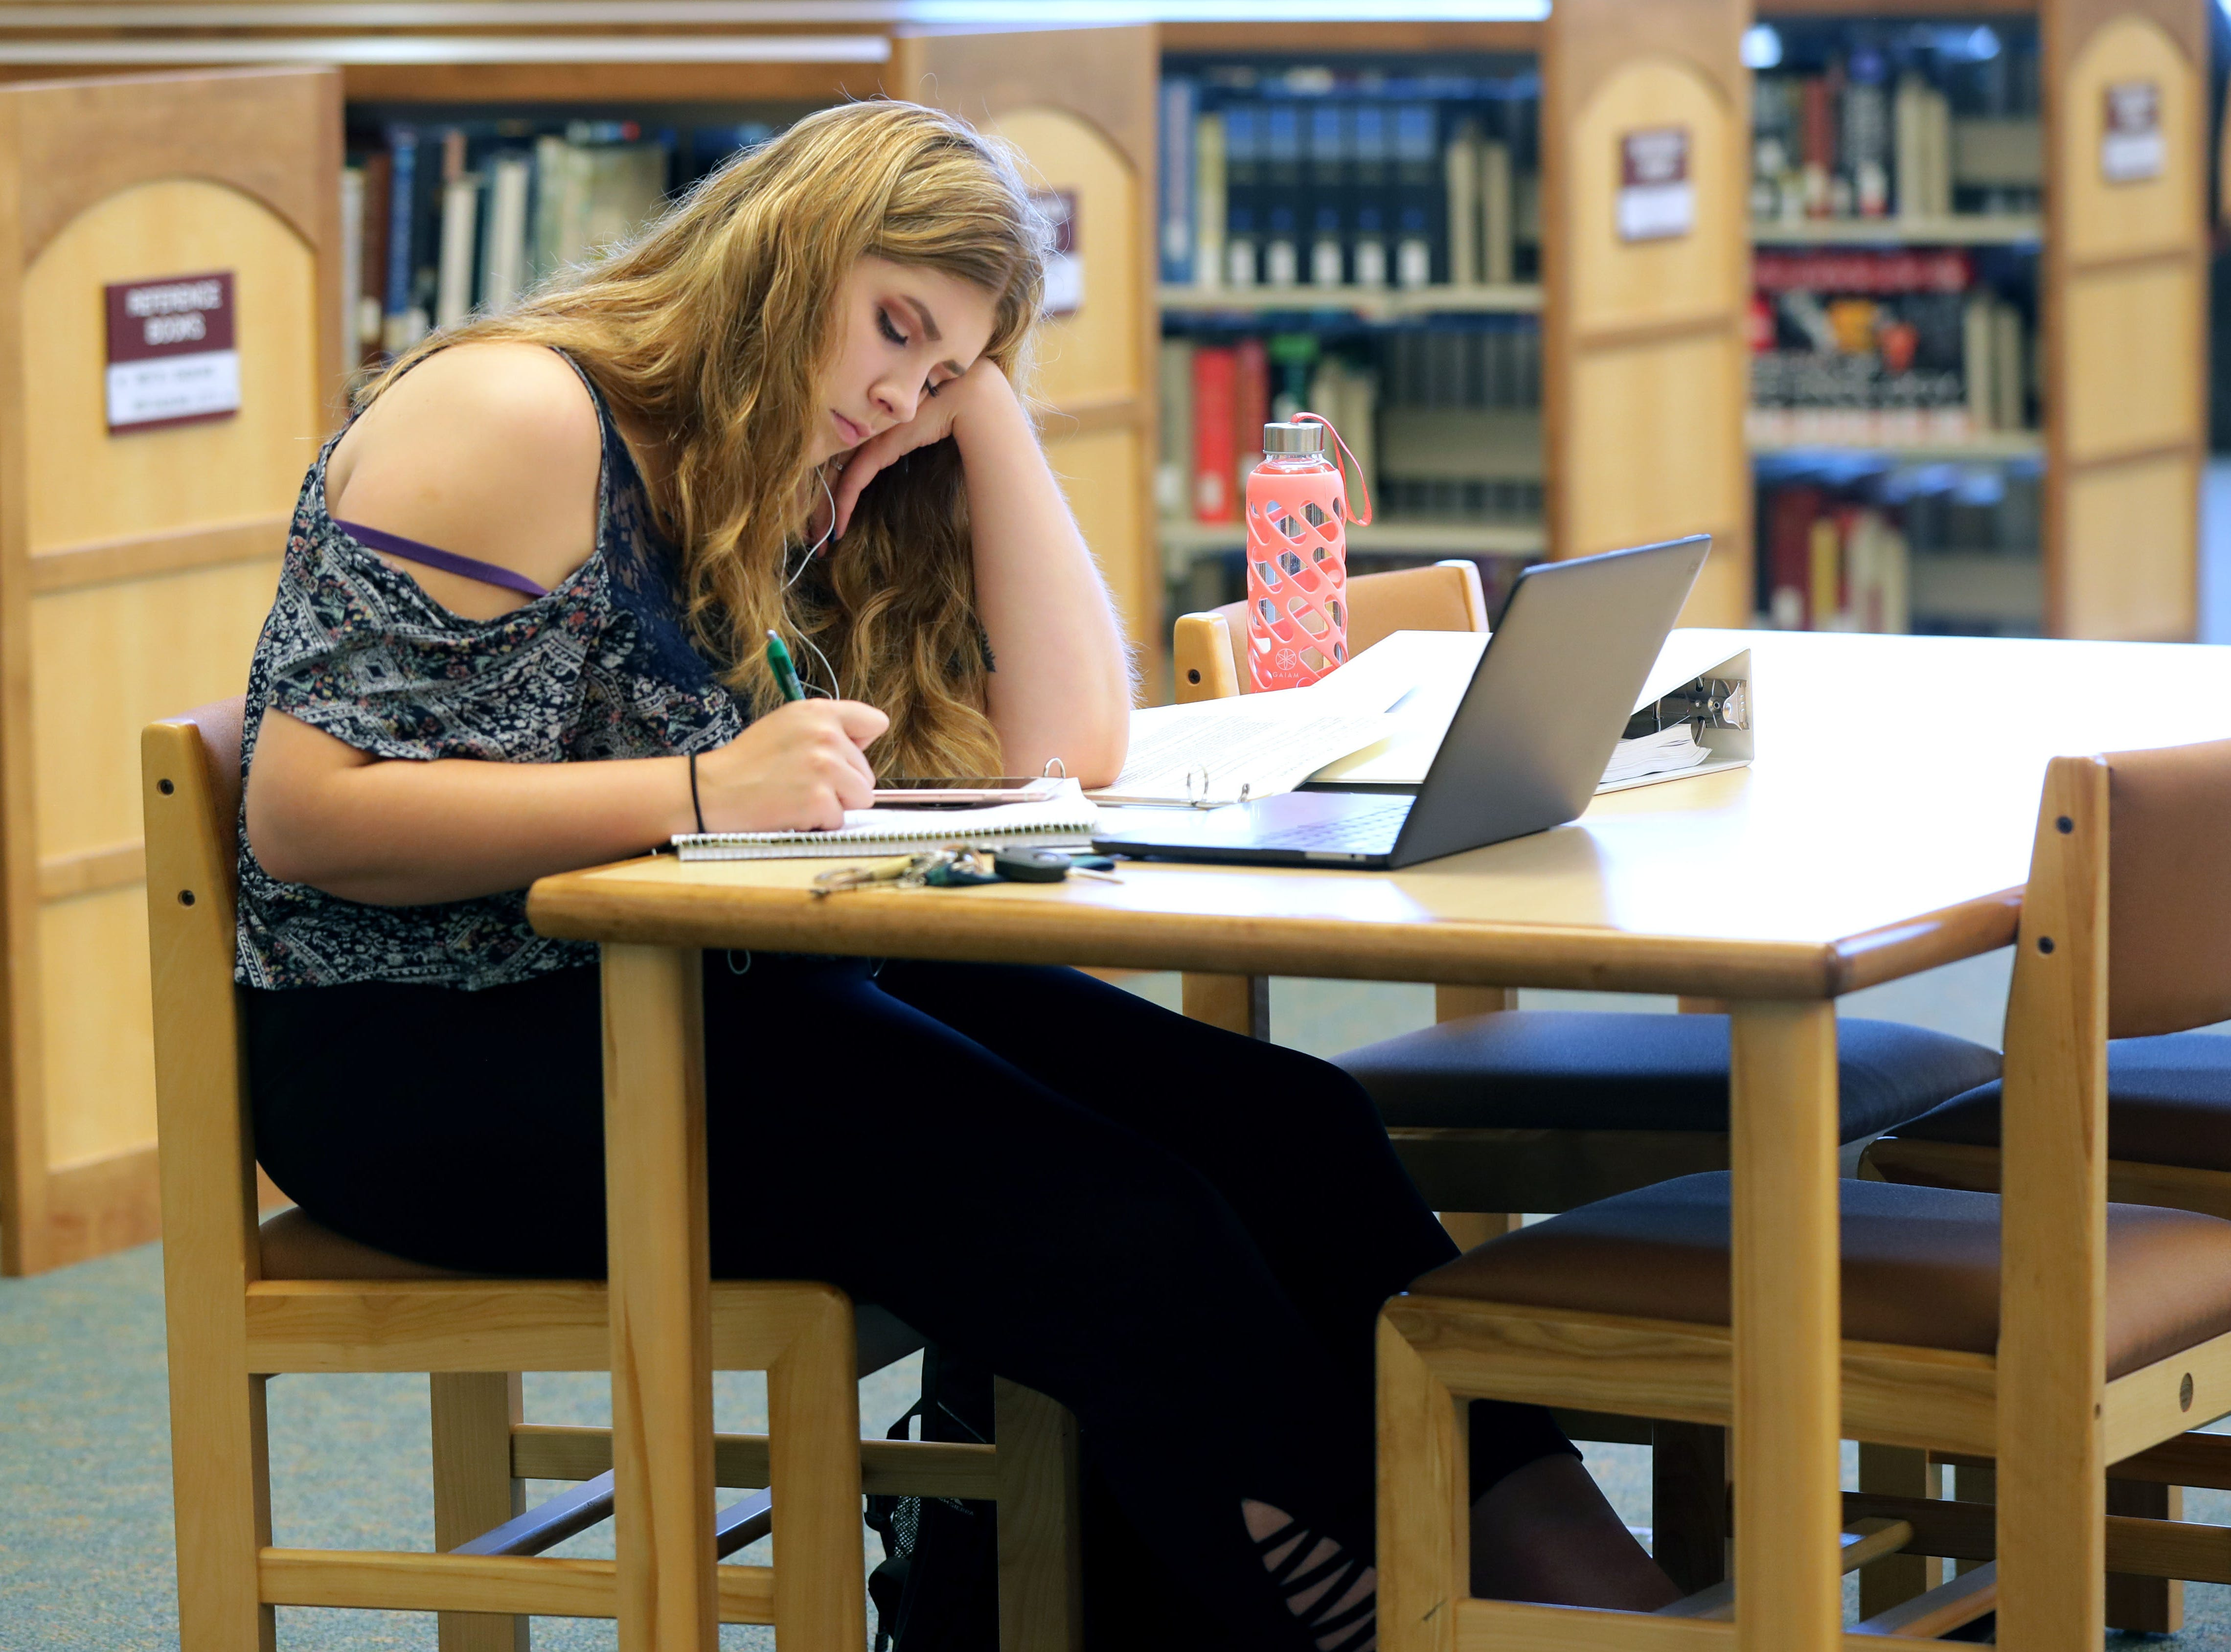 Anissa Levister, freshman majoring in substance abuse counseling from Plymouth, studies at the University of Wisconsin-Green Bay, Sheboygan Campus library.